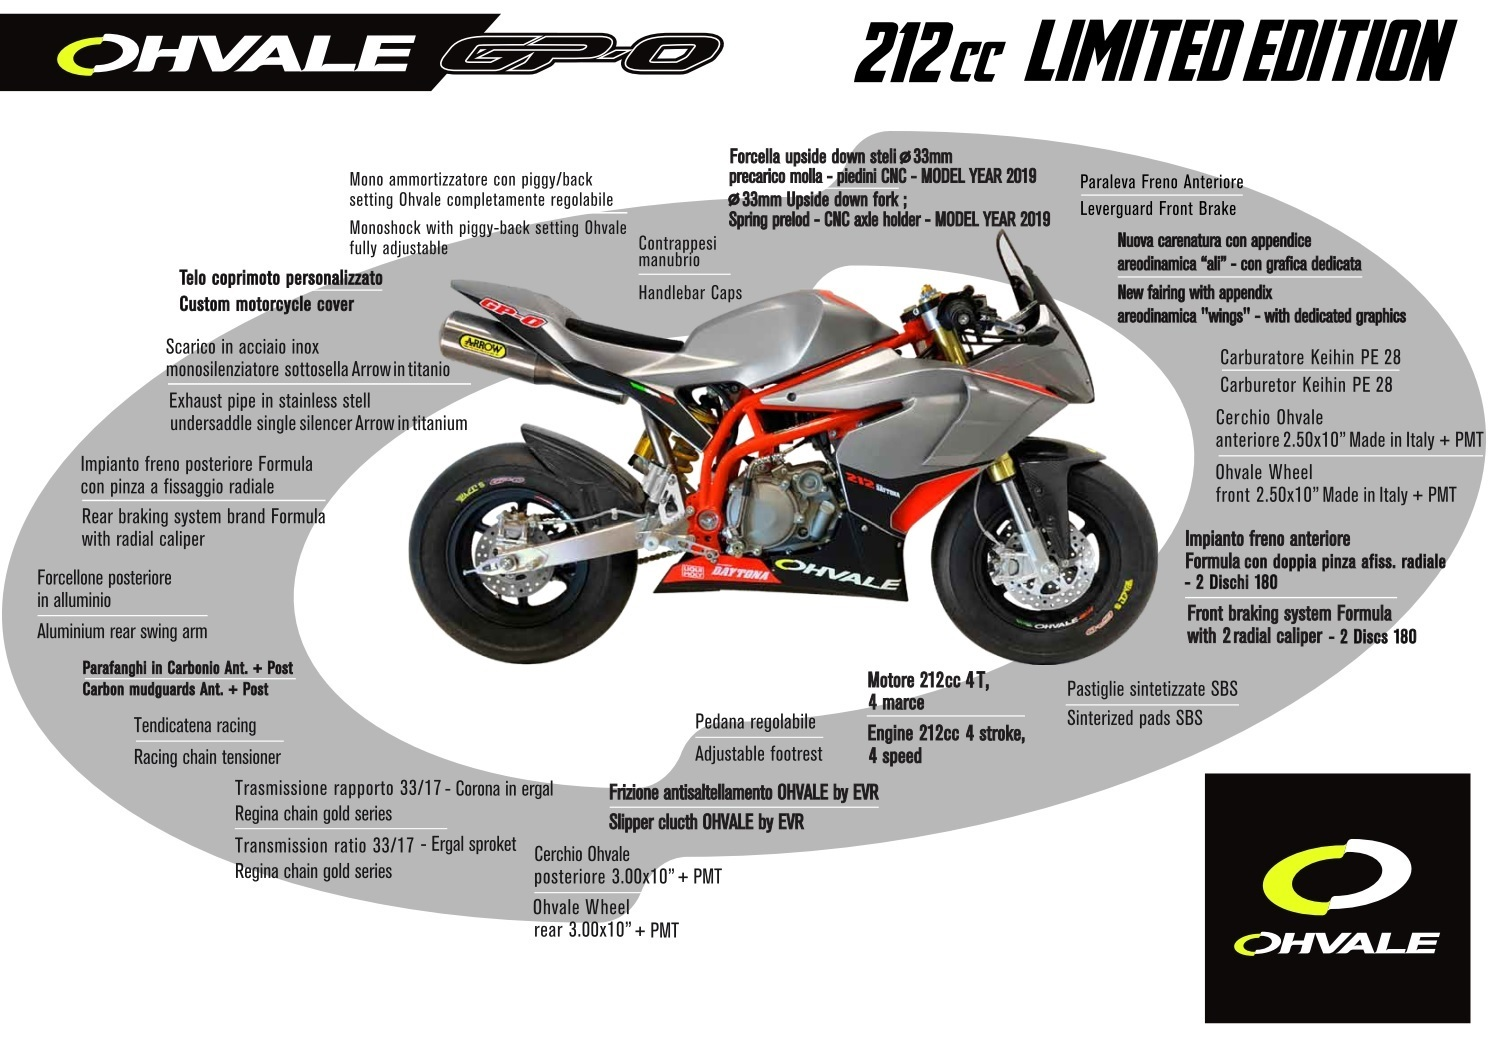 ohvale212